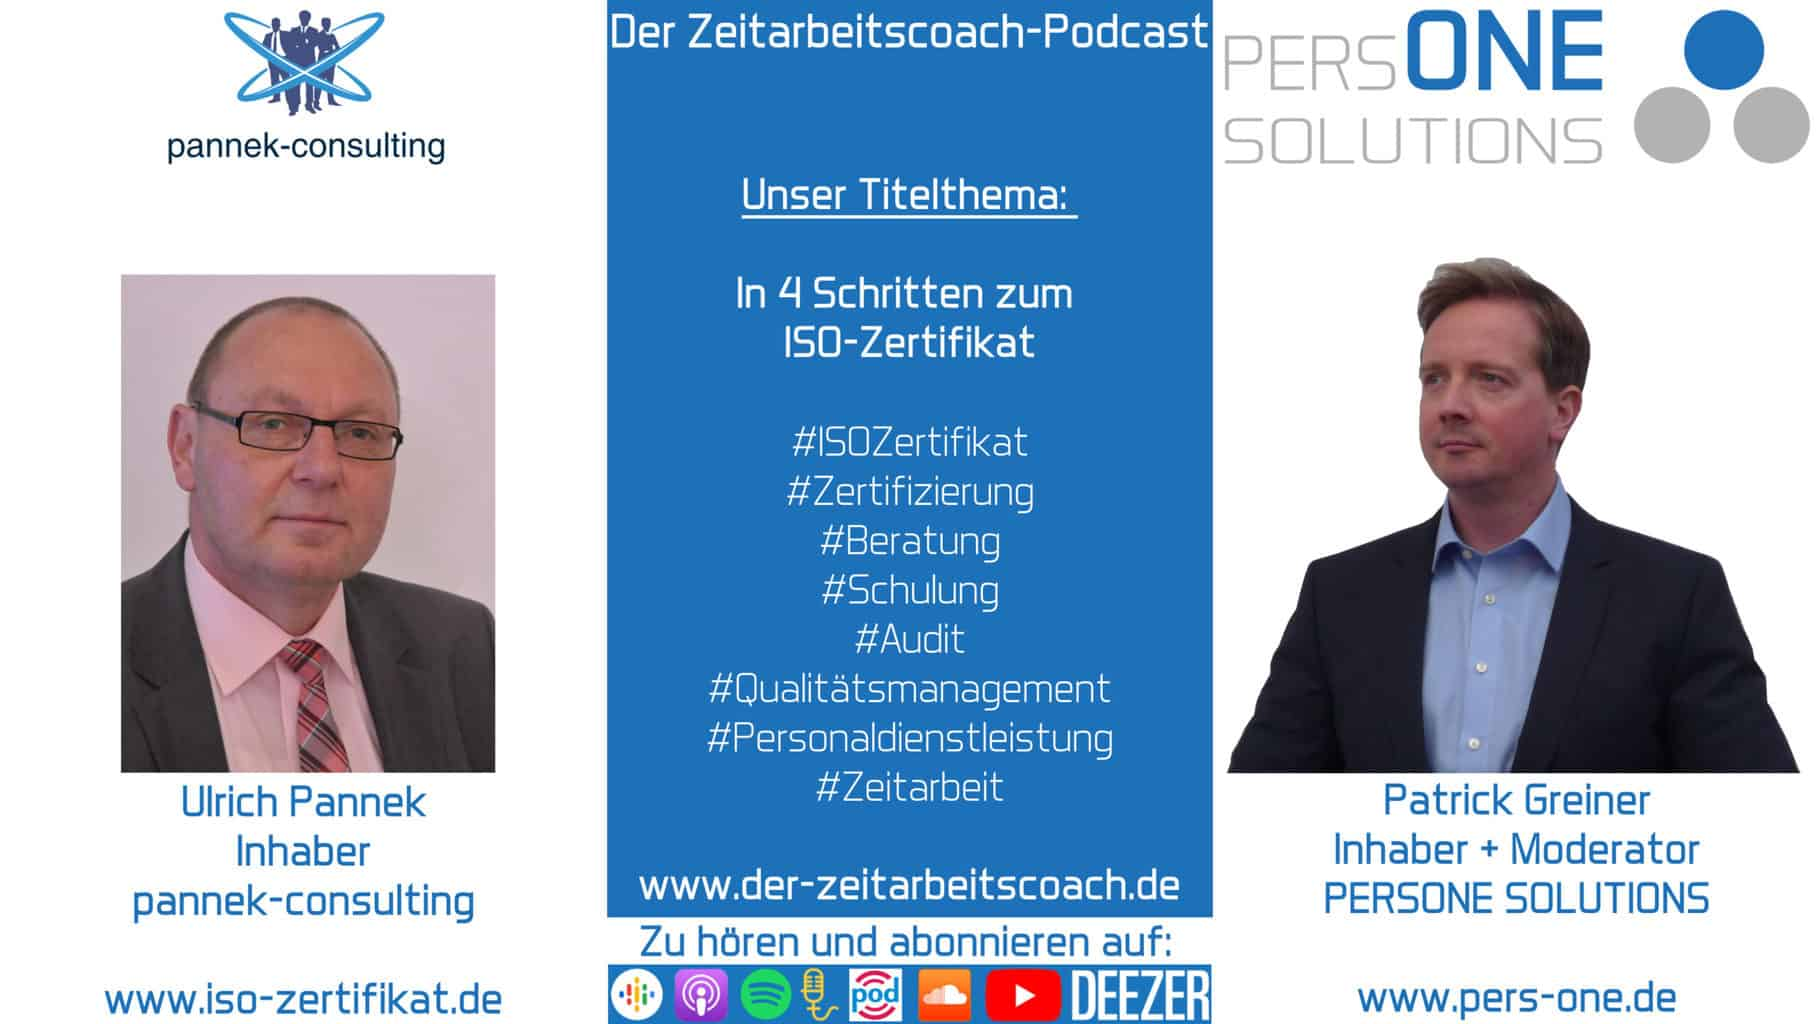 Pannek, Ulrich_Podcast SM Grafik-Interview_Zeitarbeitscoach-Podcast